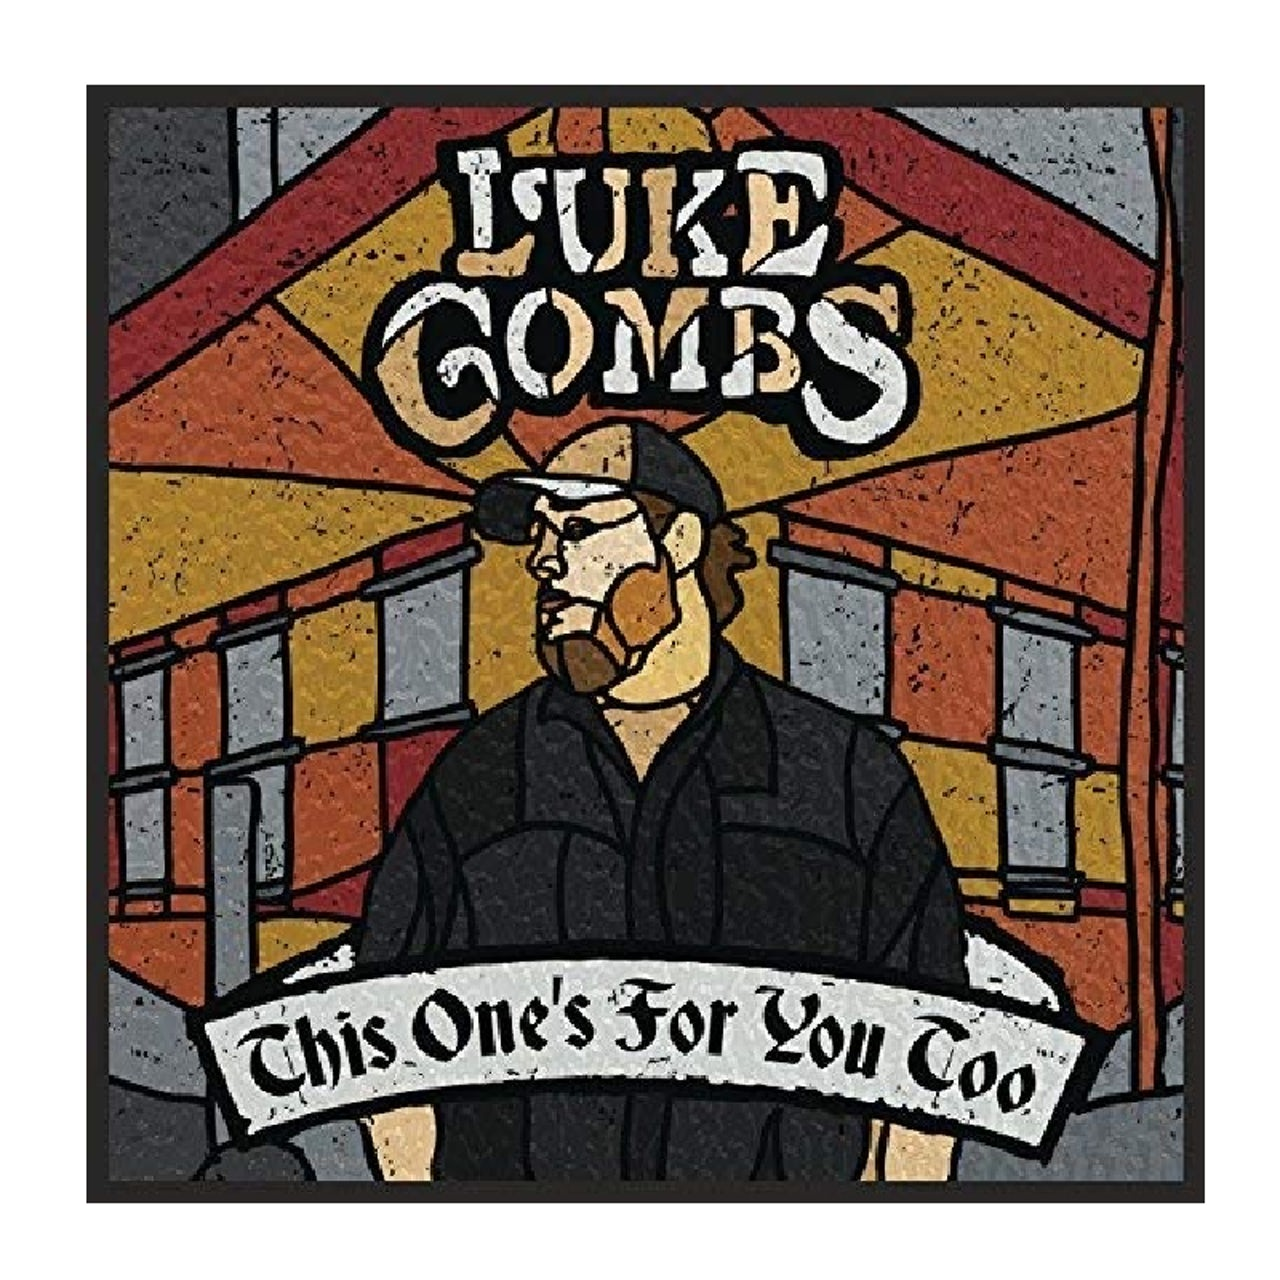 Luke Combs Announces His Latest Album Find Out What Is Unique In It